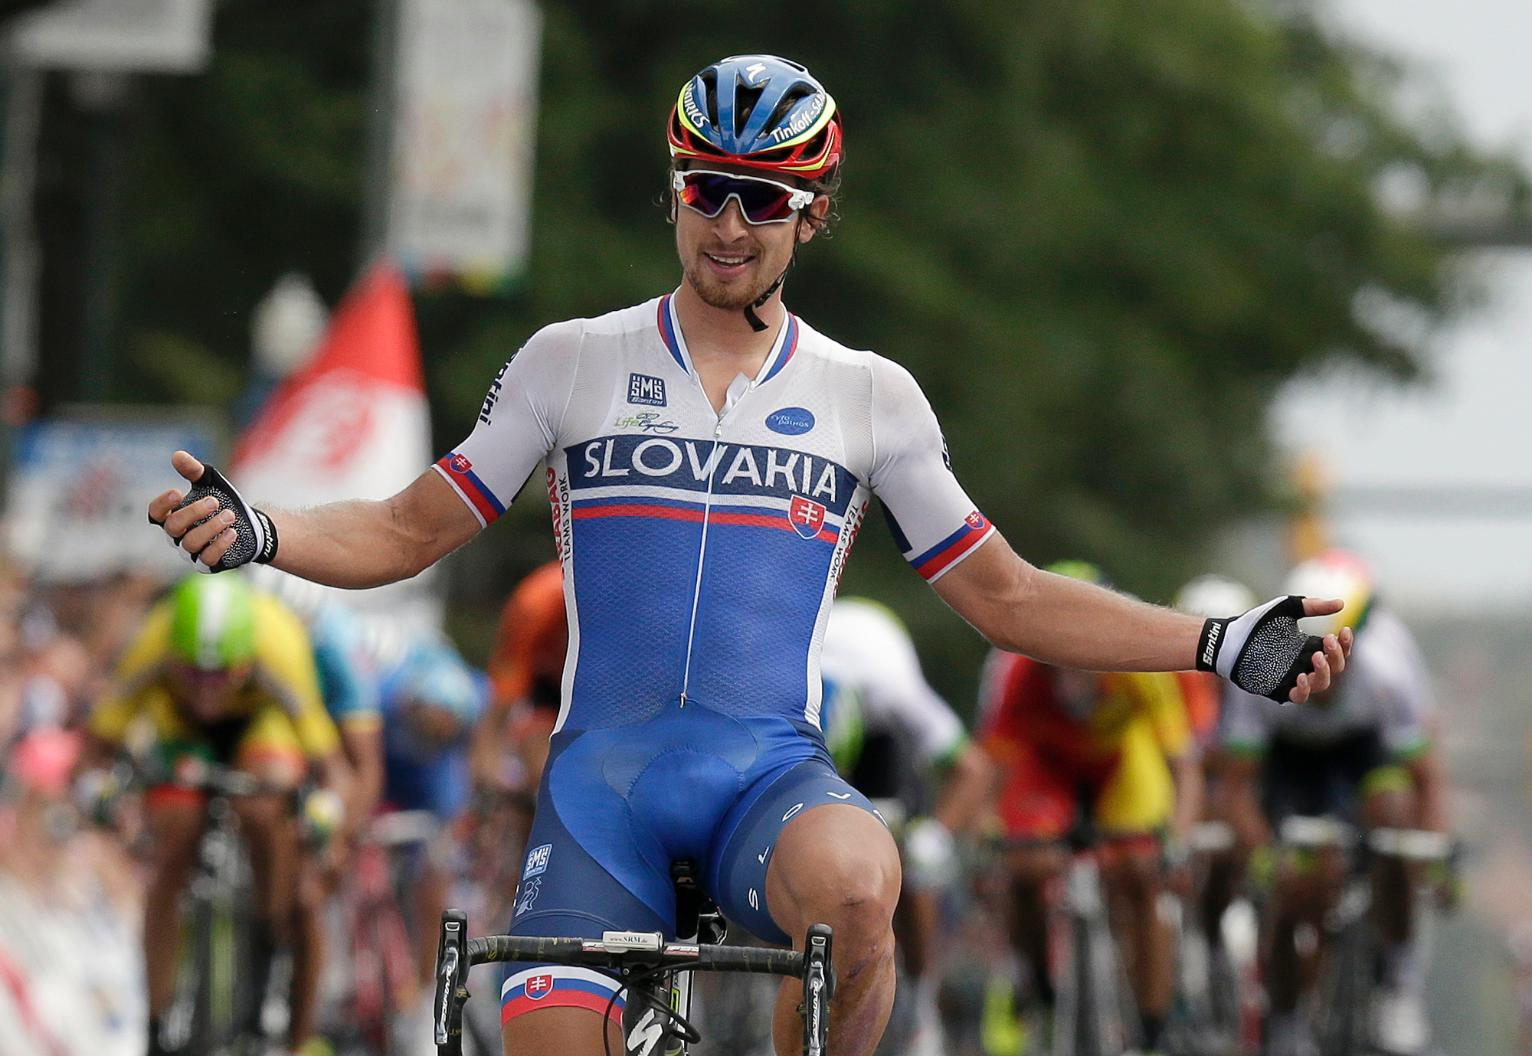 Peter Sagan powers to gold to cap road world championships | Sports ...